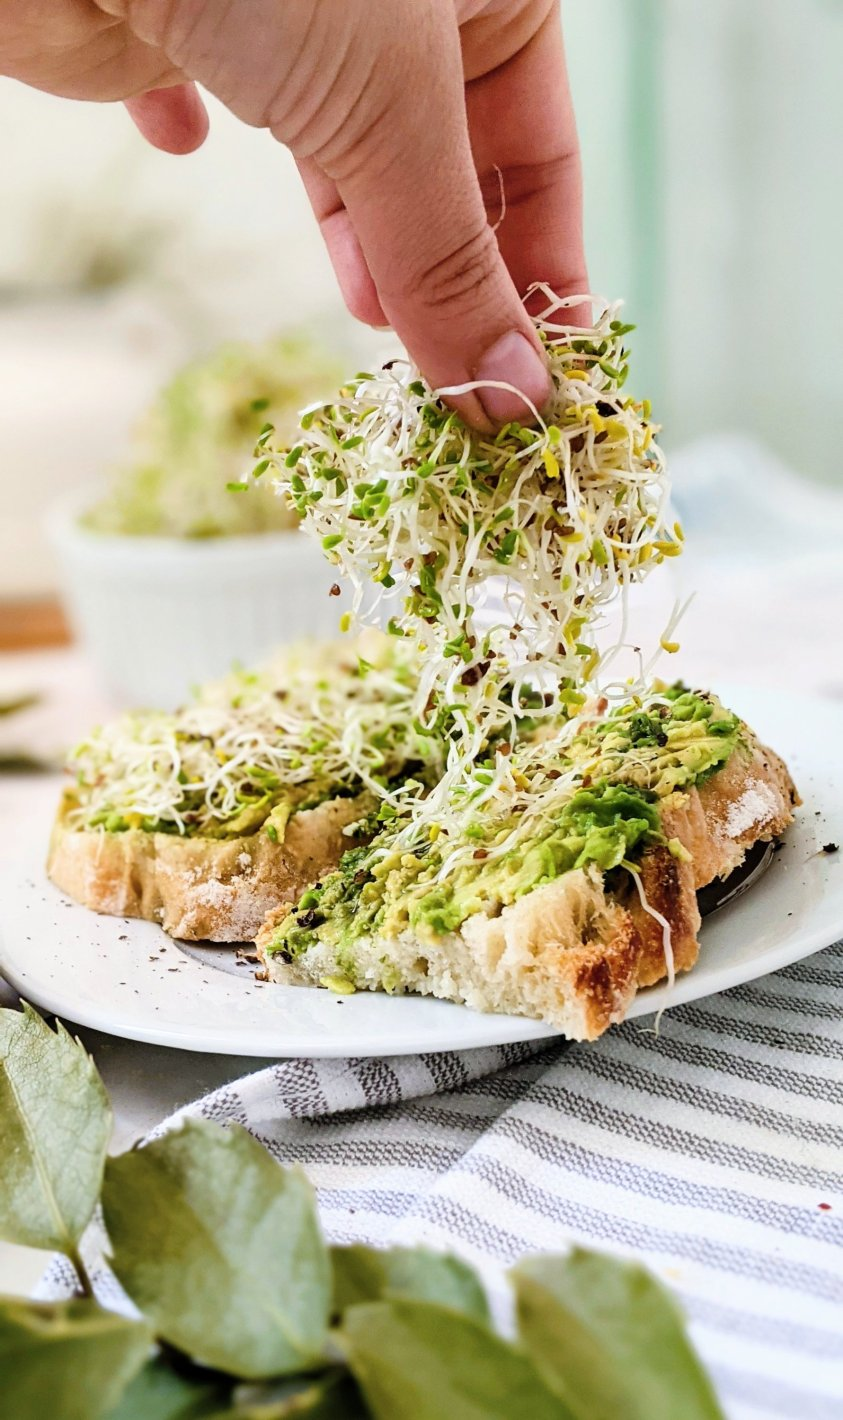 sprouts for breakfast recipe with alfalfa sprouts meal ideas ways to eat sprouts for breakfast brunch or a light lunch recipes with alfalfa sprouts avocado toast with sprouts